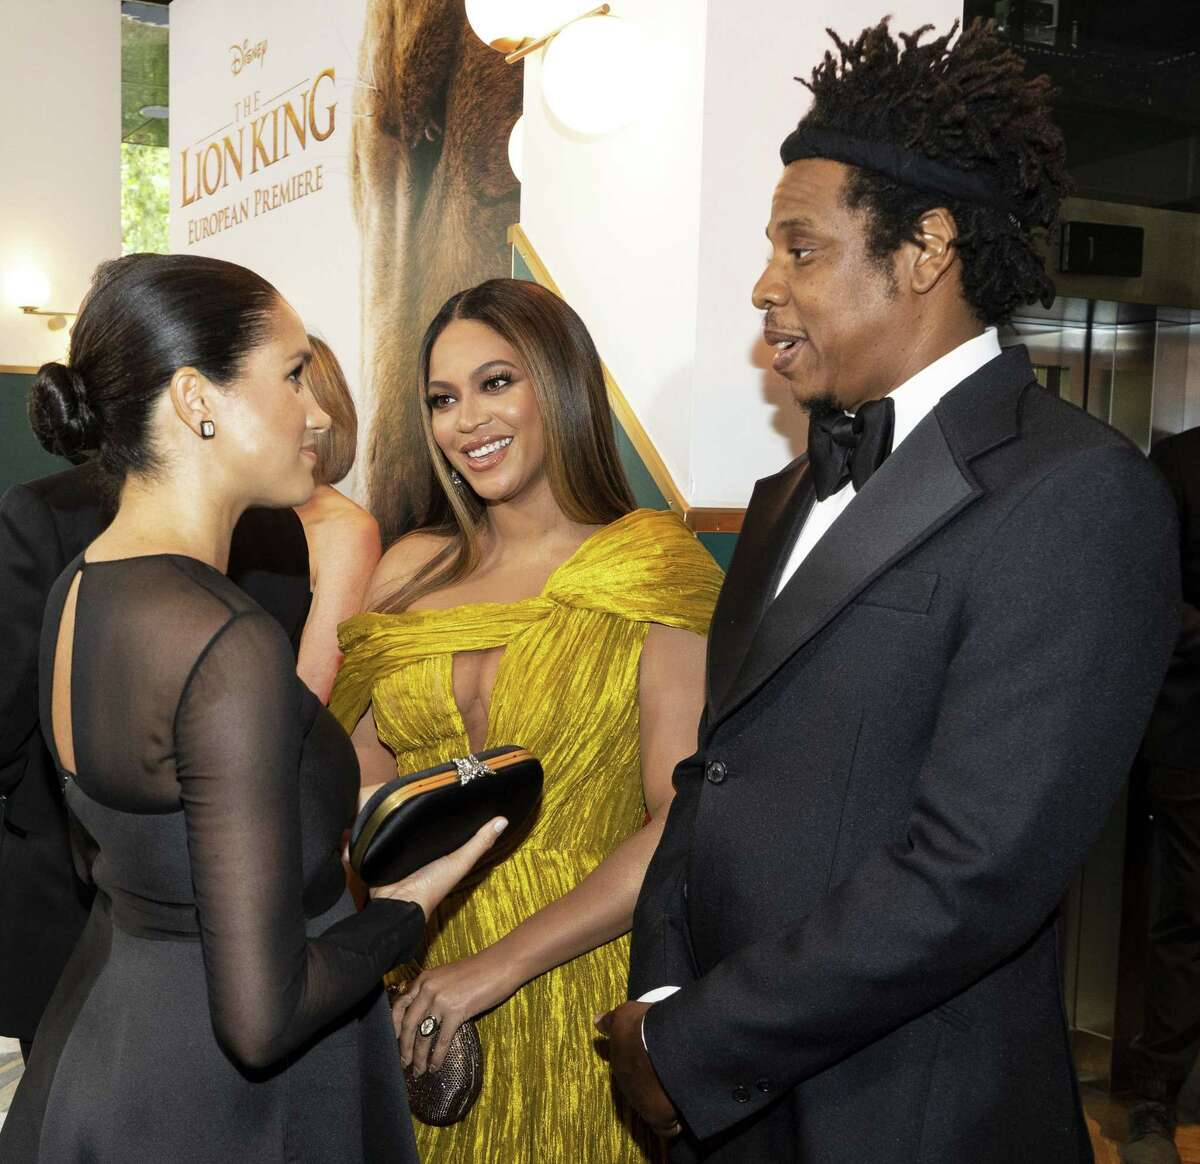 Britain's Meghan, Duchess of Sussex (L) meets cast and crew, including US singer-songwriter Beyoncé (C) and her husband, US rapper Jay-Z (R) as she attends the European premiere of the film The Lion King in London on July 14, 2019. (Photo by Niklas HALLE'N / POOL / AFP)NIKLAS HALLE'N/AFP/Getty Images